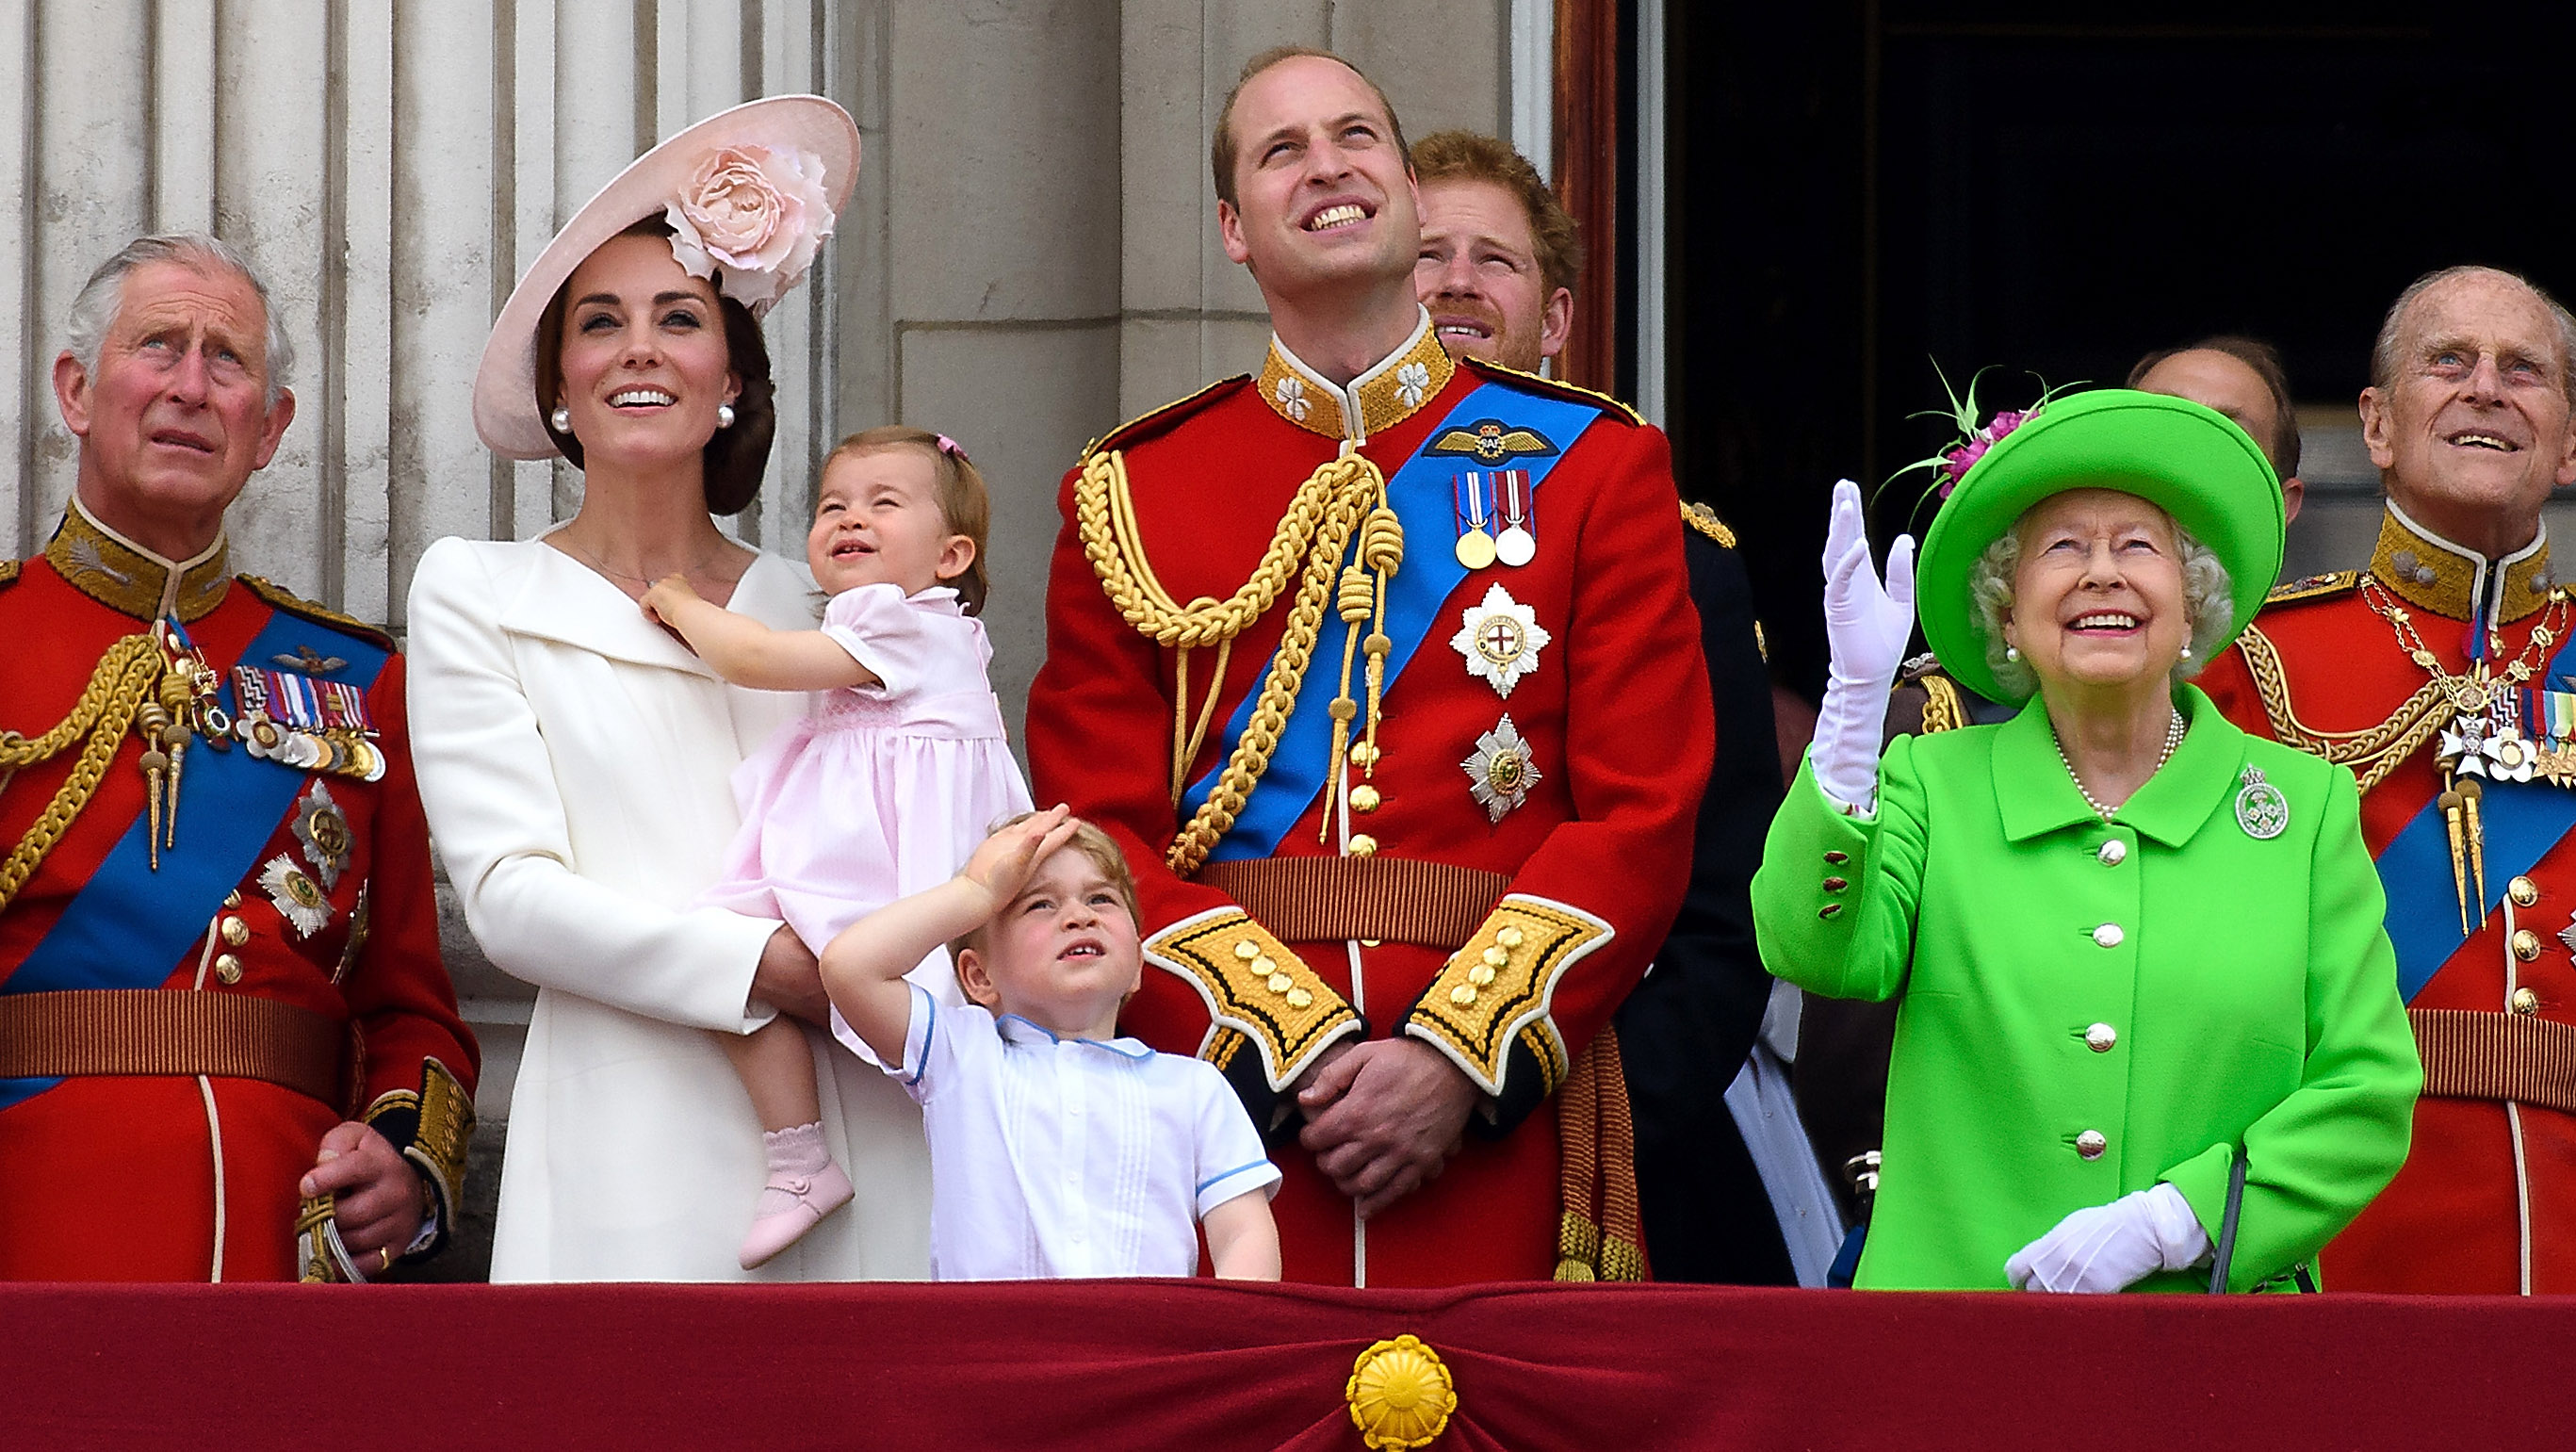 (L-R) Prince Charles, Prince of Wales, Catherine, Duchess of Cambridge, Princess Charlotte, Prince George, Prince William, Duke of Cambridge, Prince Harry, Queen Elizabeth II and Prince Philip, Duke of Edinburgh stand on the balcony during the Trooping the Colour, this year marking the Queen's 90th birthday at The Mall on June 11, 2016 in London, England. The ceremony is Queen Elizabeth II's annual birthday parade and dates back to the time of Charles II in the 17th Century when the Colours of a regiment were used as a rallying point in battle.